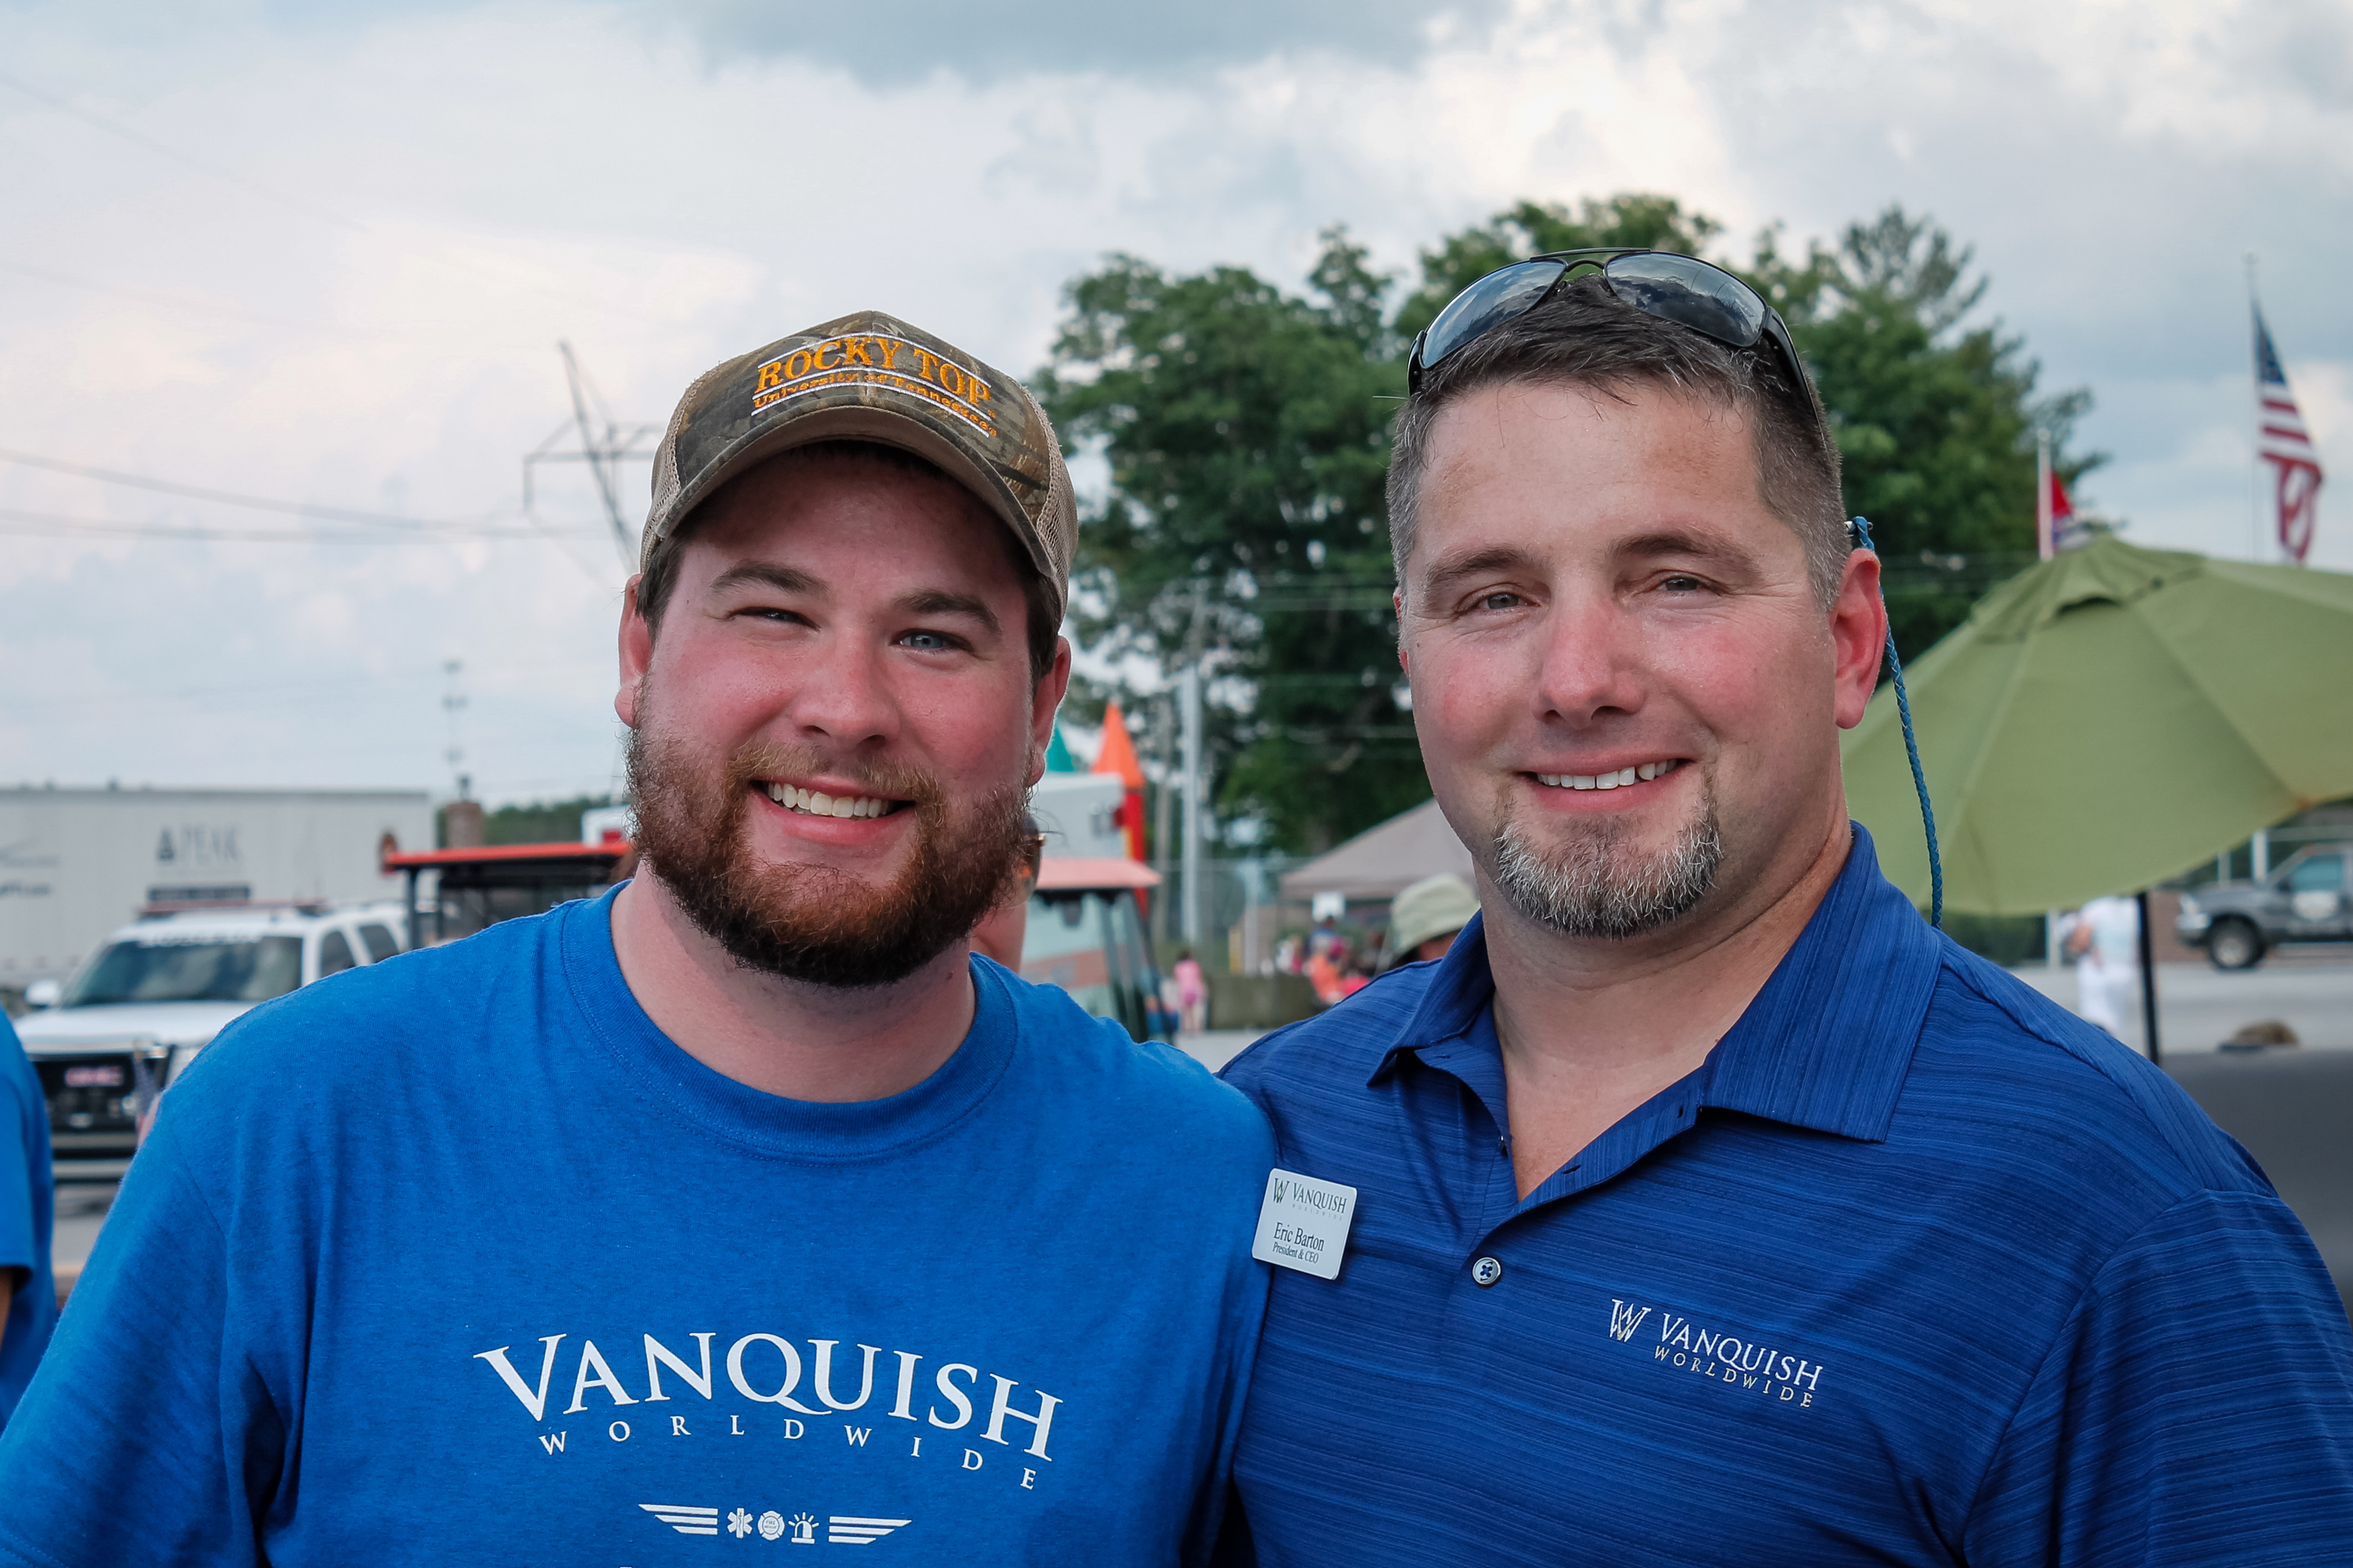 Cody and Eric Barton pose for a photo during an Honoring Our Heroes event for law enforcement, firefighters and EMTs in 2015. The event was hosted by sister companies Vanquish Worldwide, LexLin Gypsy Ranch, Peak Technical Institute and Front Range Training and Consulting.